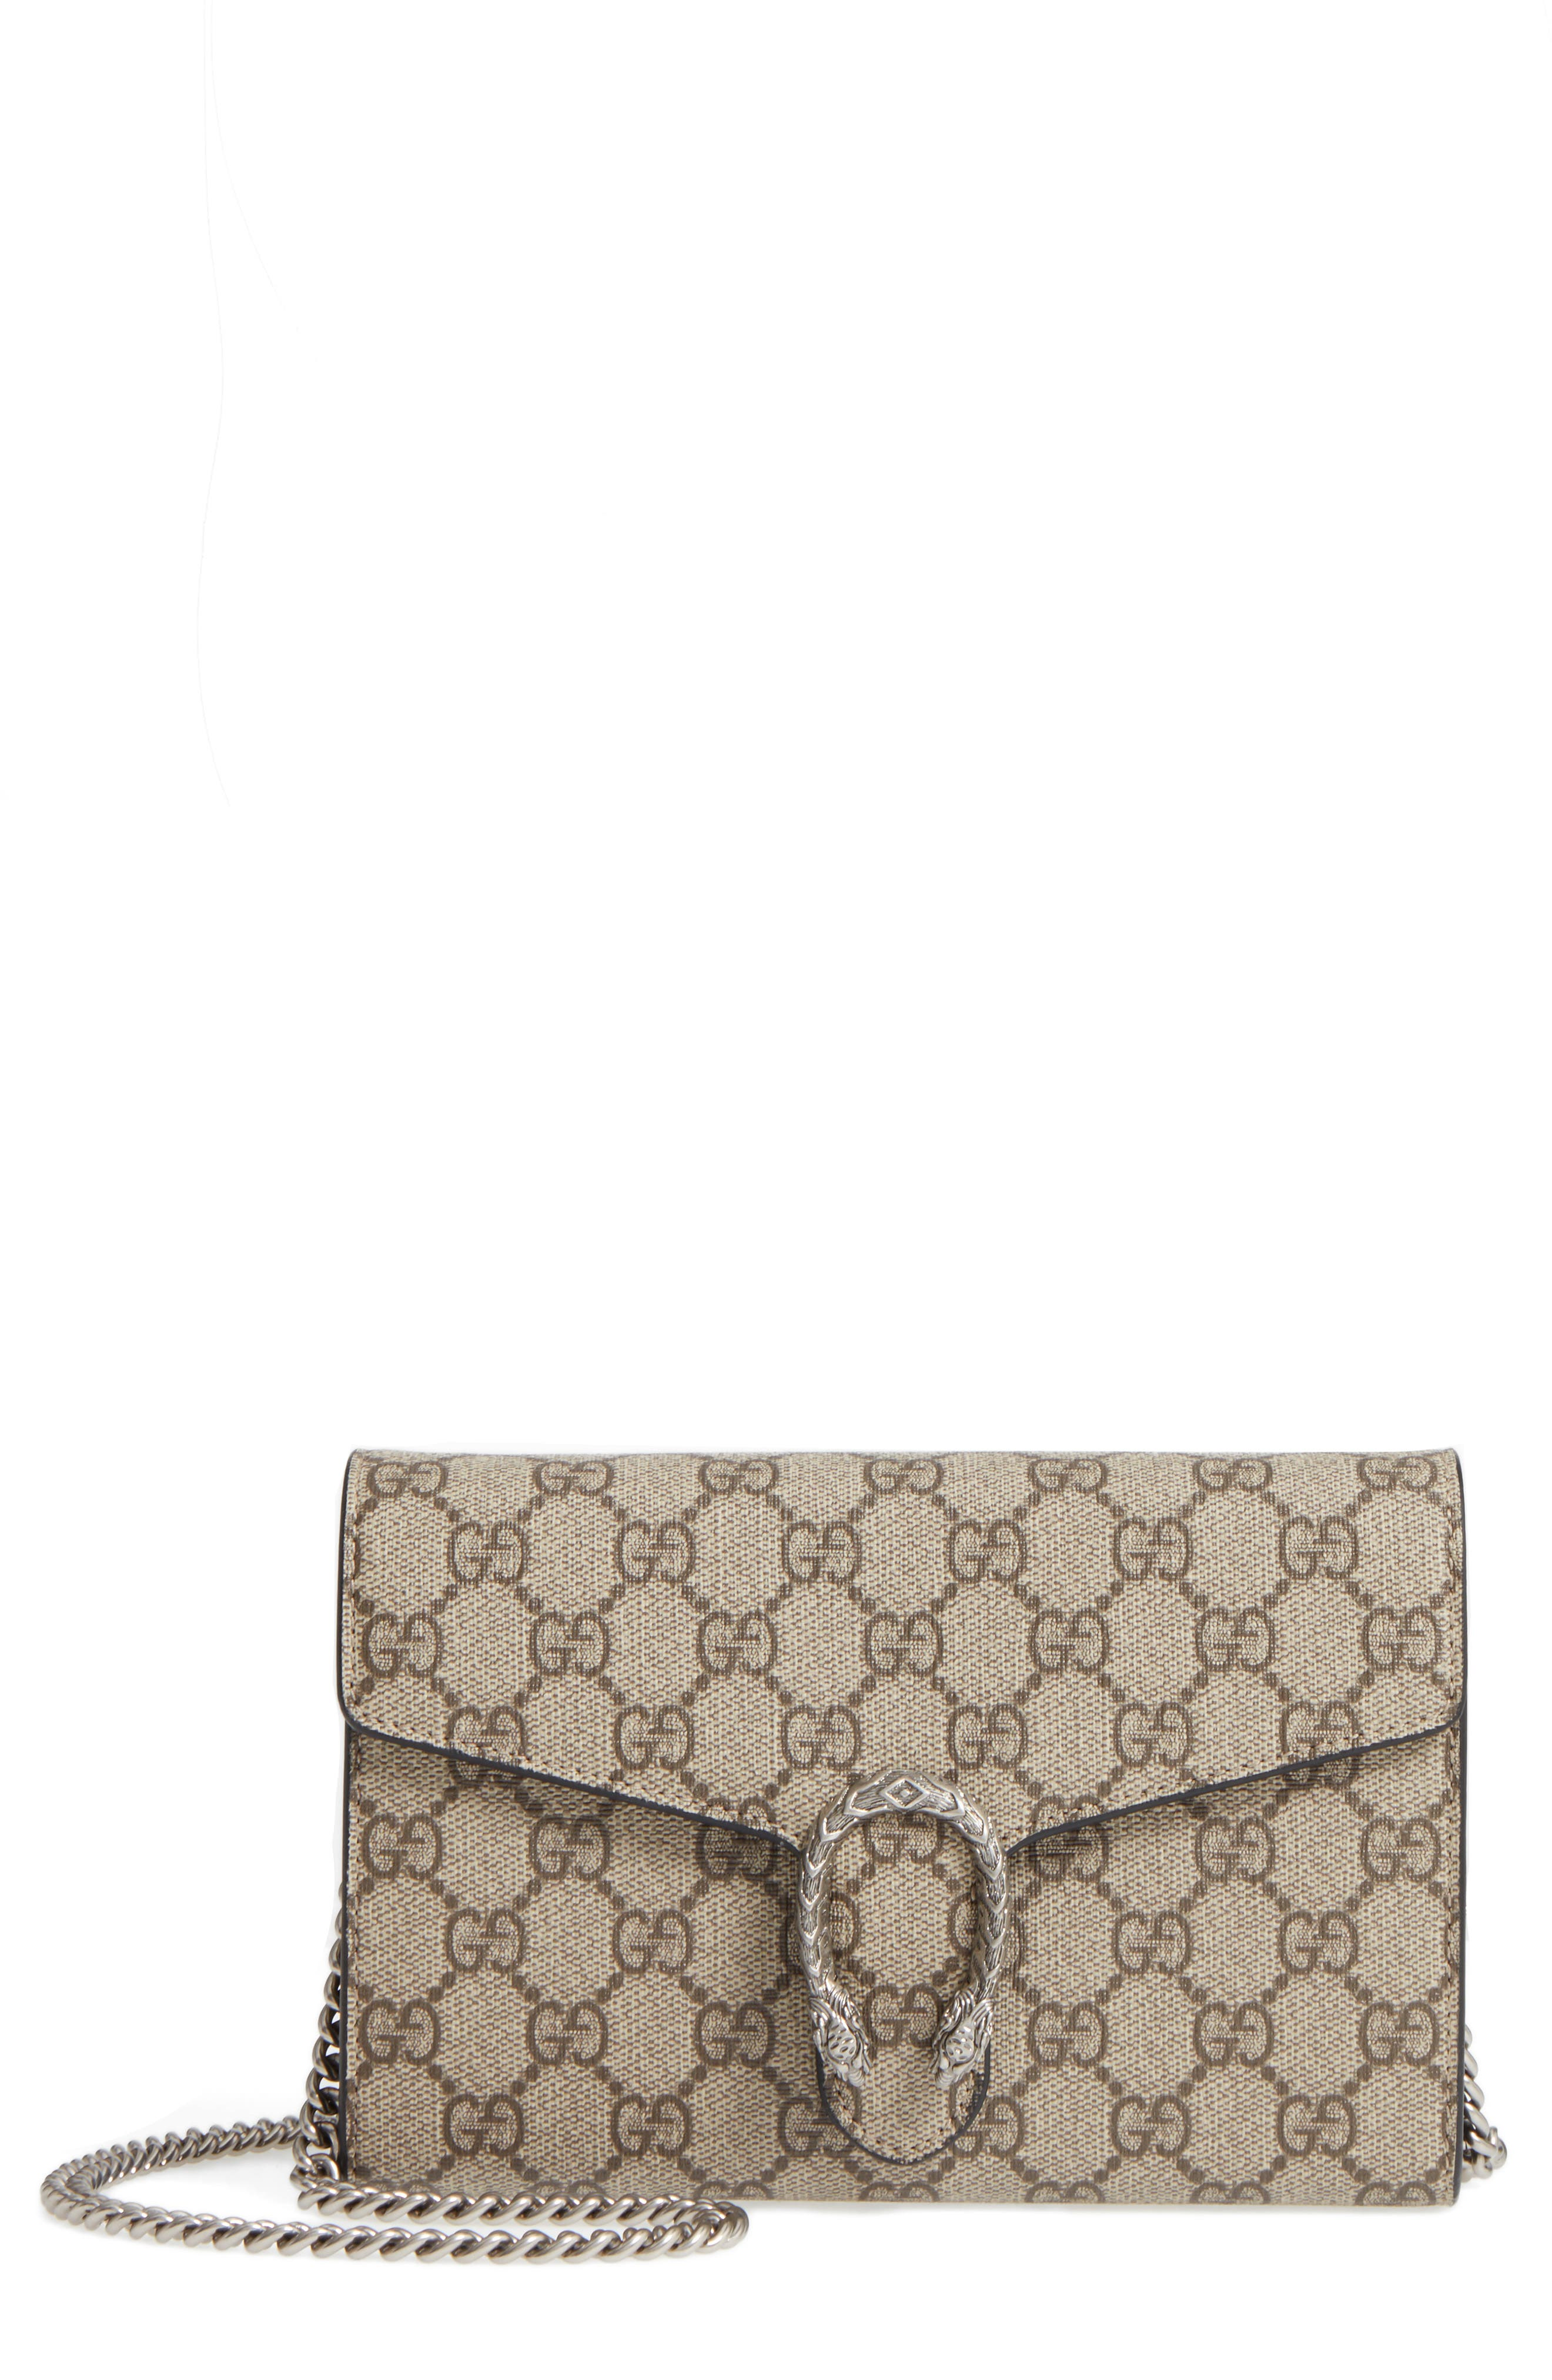 Main Image - Gucci Dionysus GG Supreme Canvas Wallet on a Chain